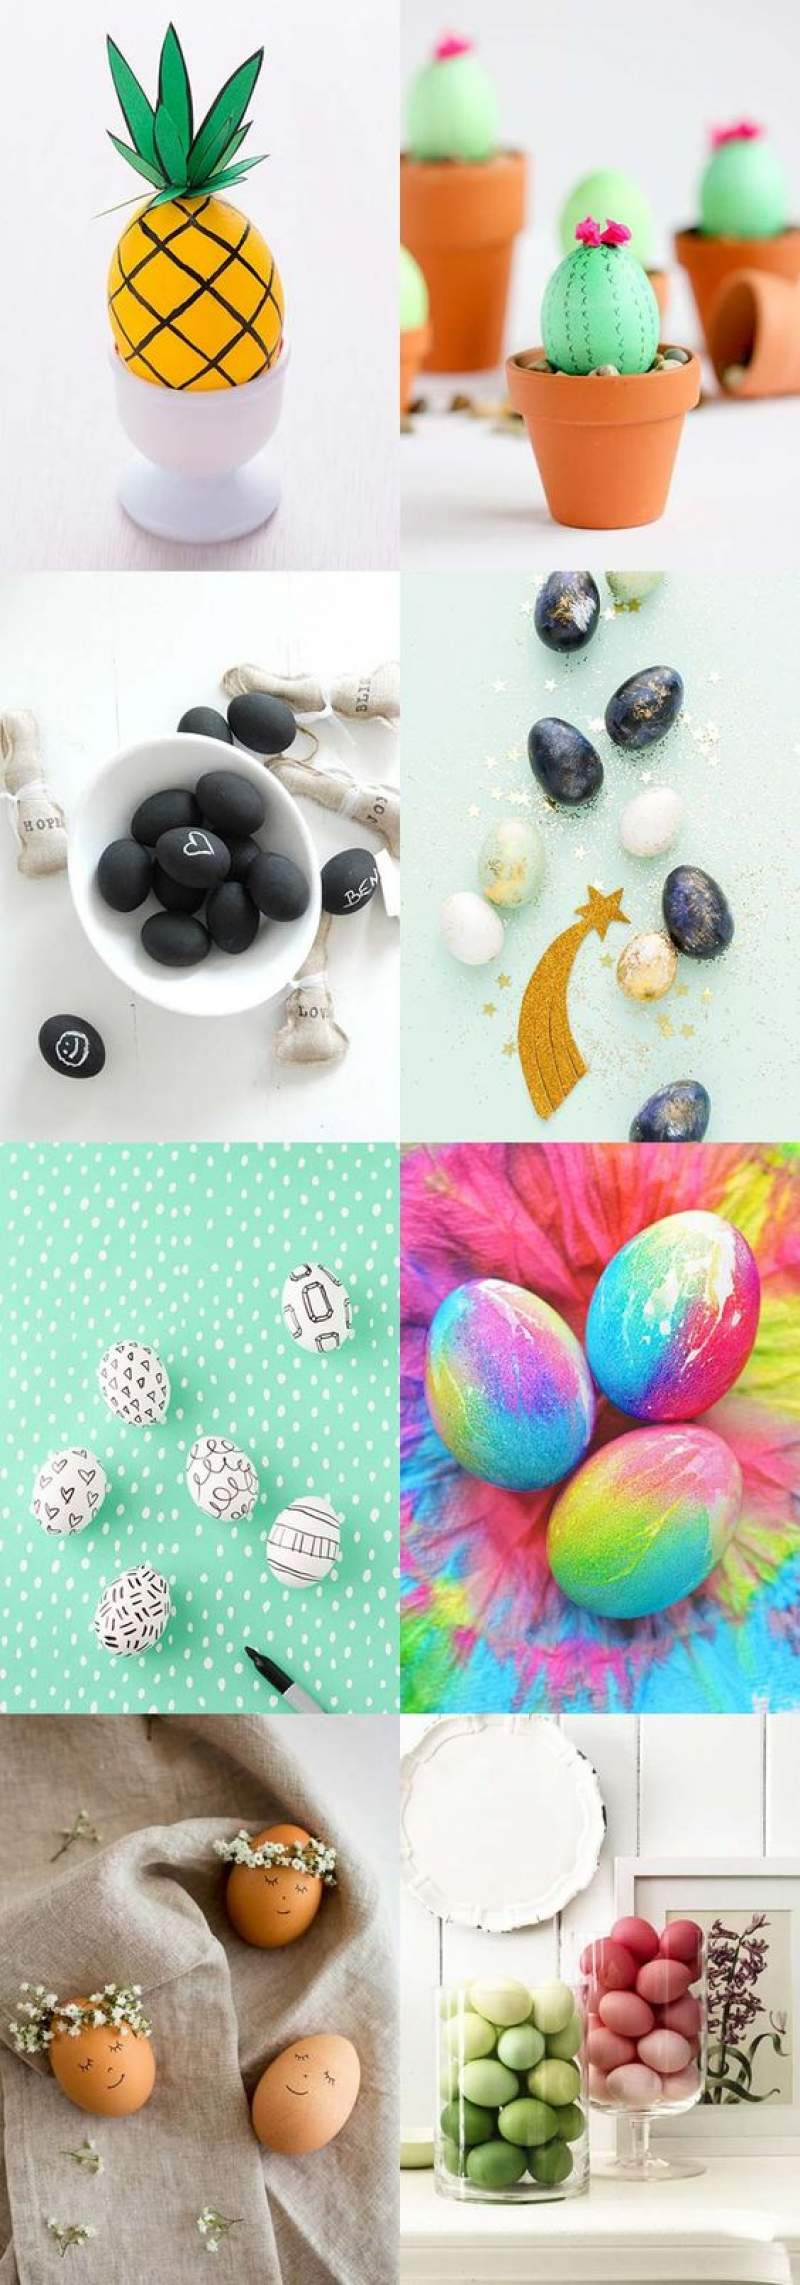 Easter Egg Decorating Ideas For 2019 Hike N Dip